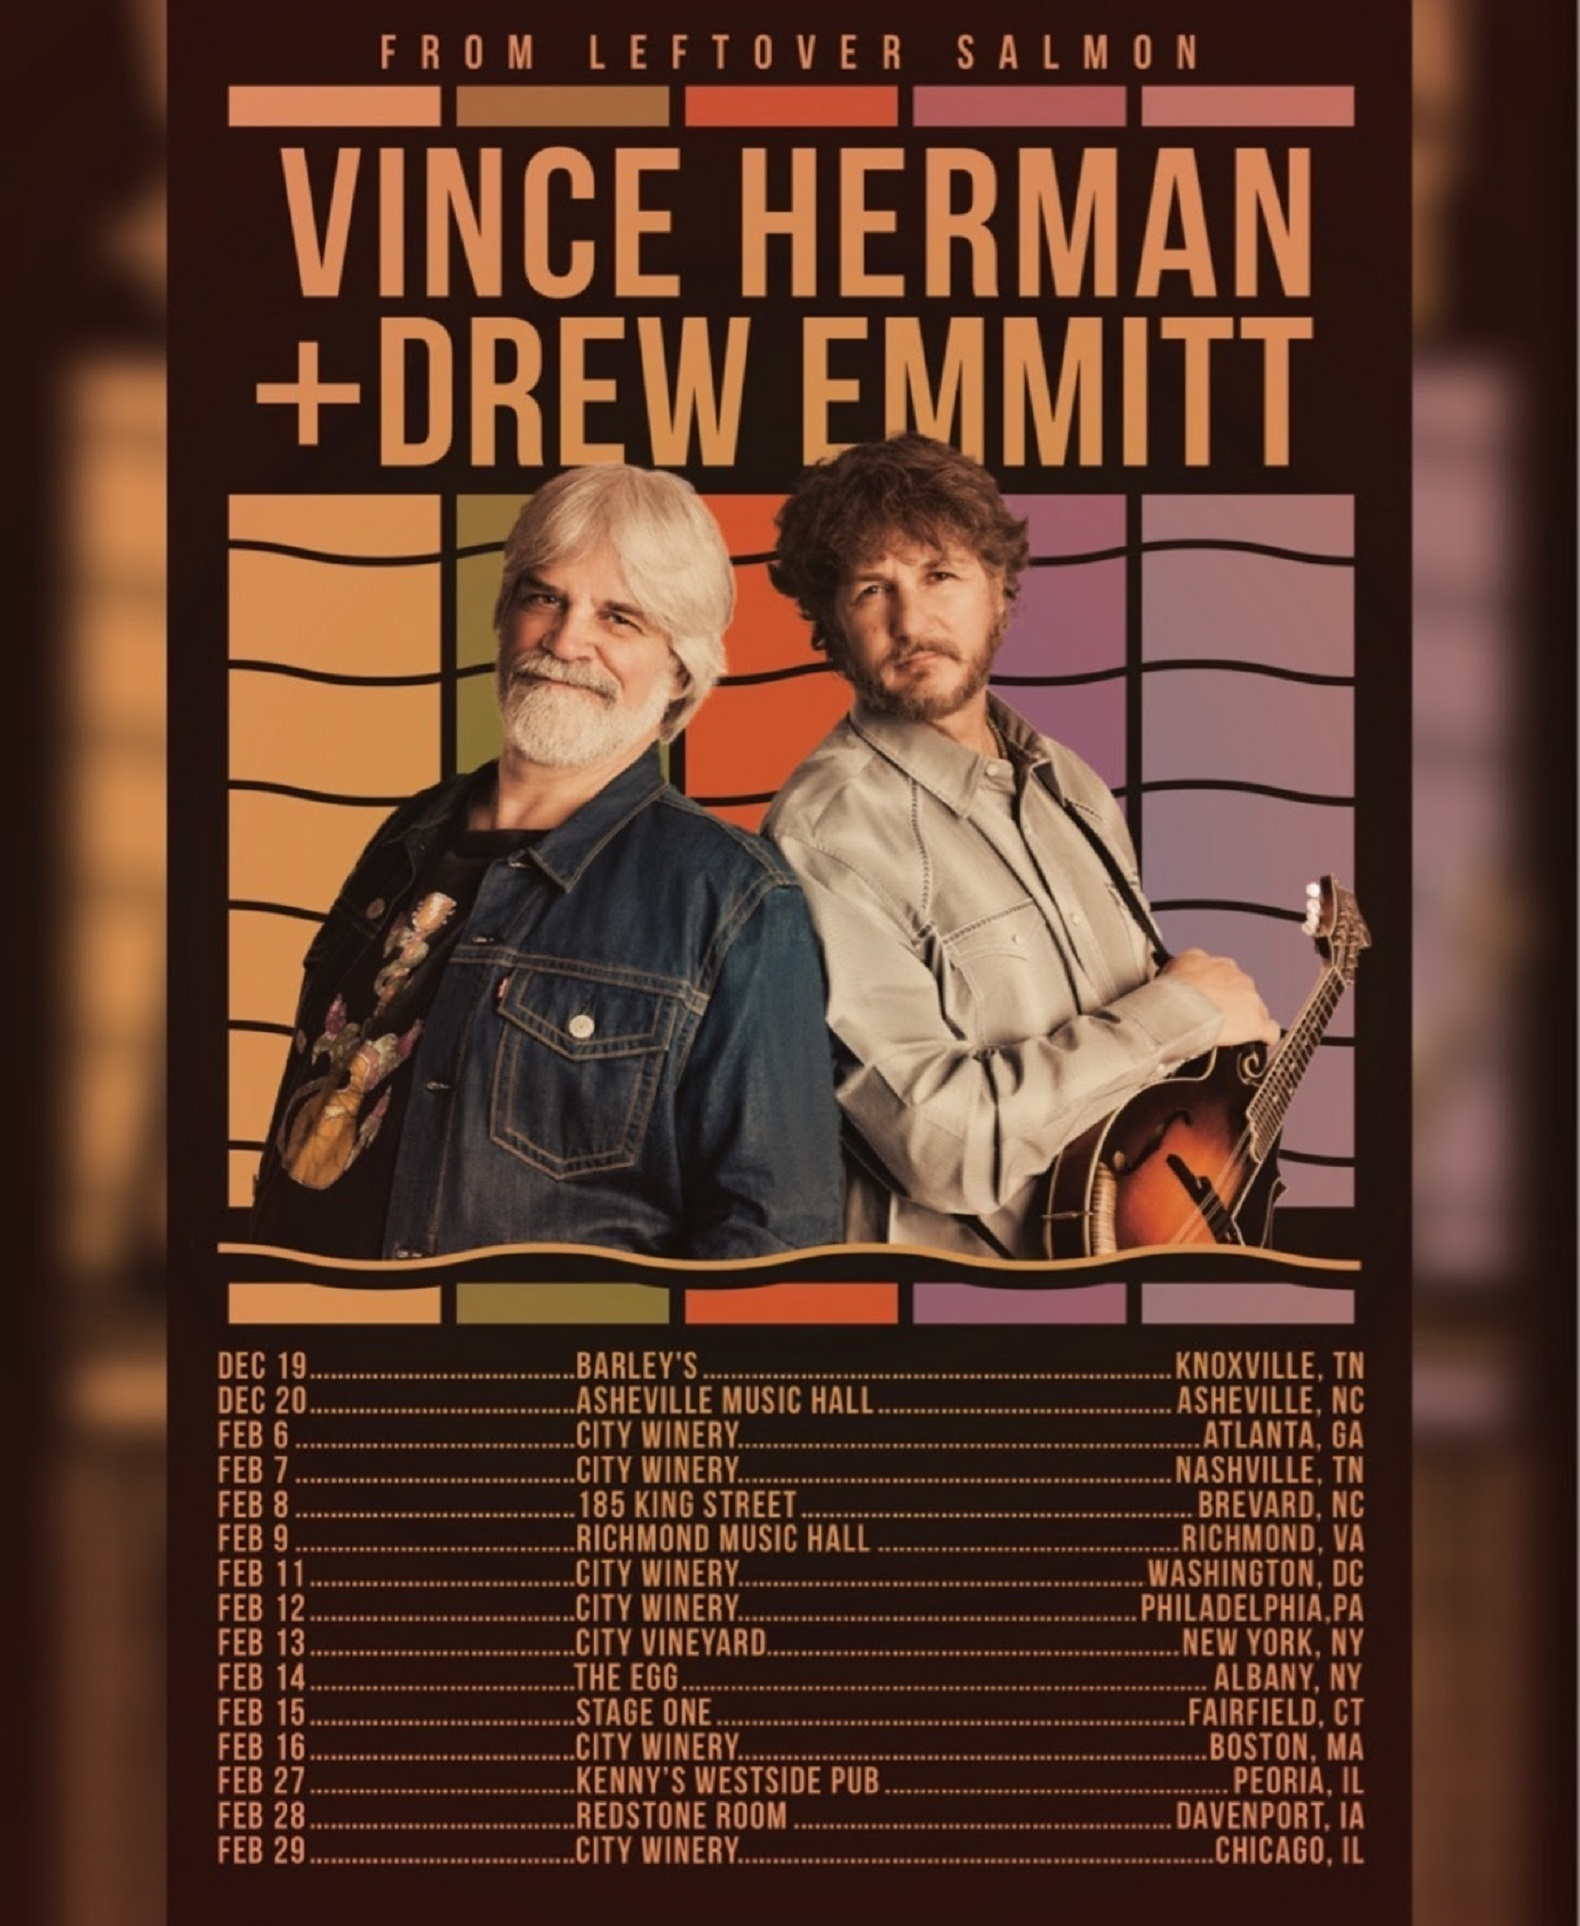 Vince Herman + Drew Emmitt On Tour This Winter